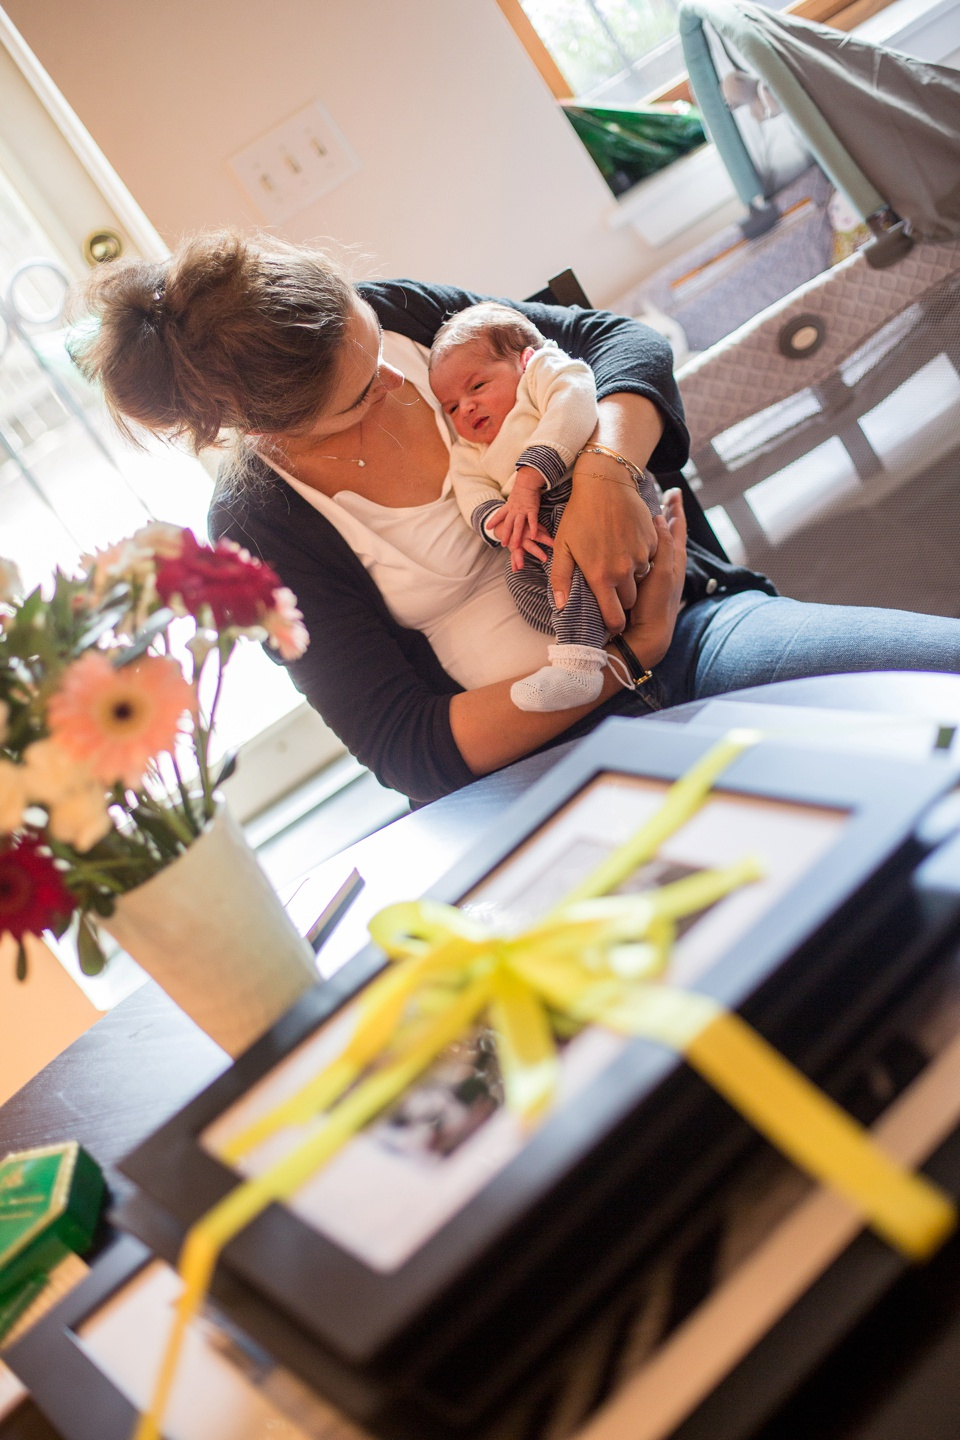 newborn baby photographed at home in boston's south end